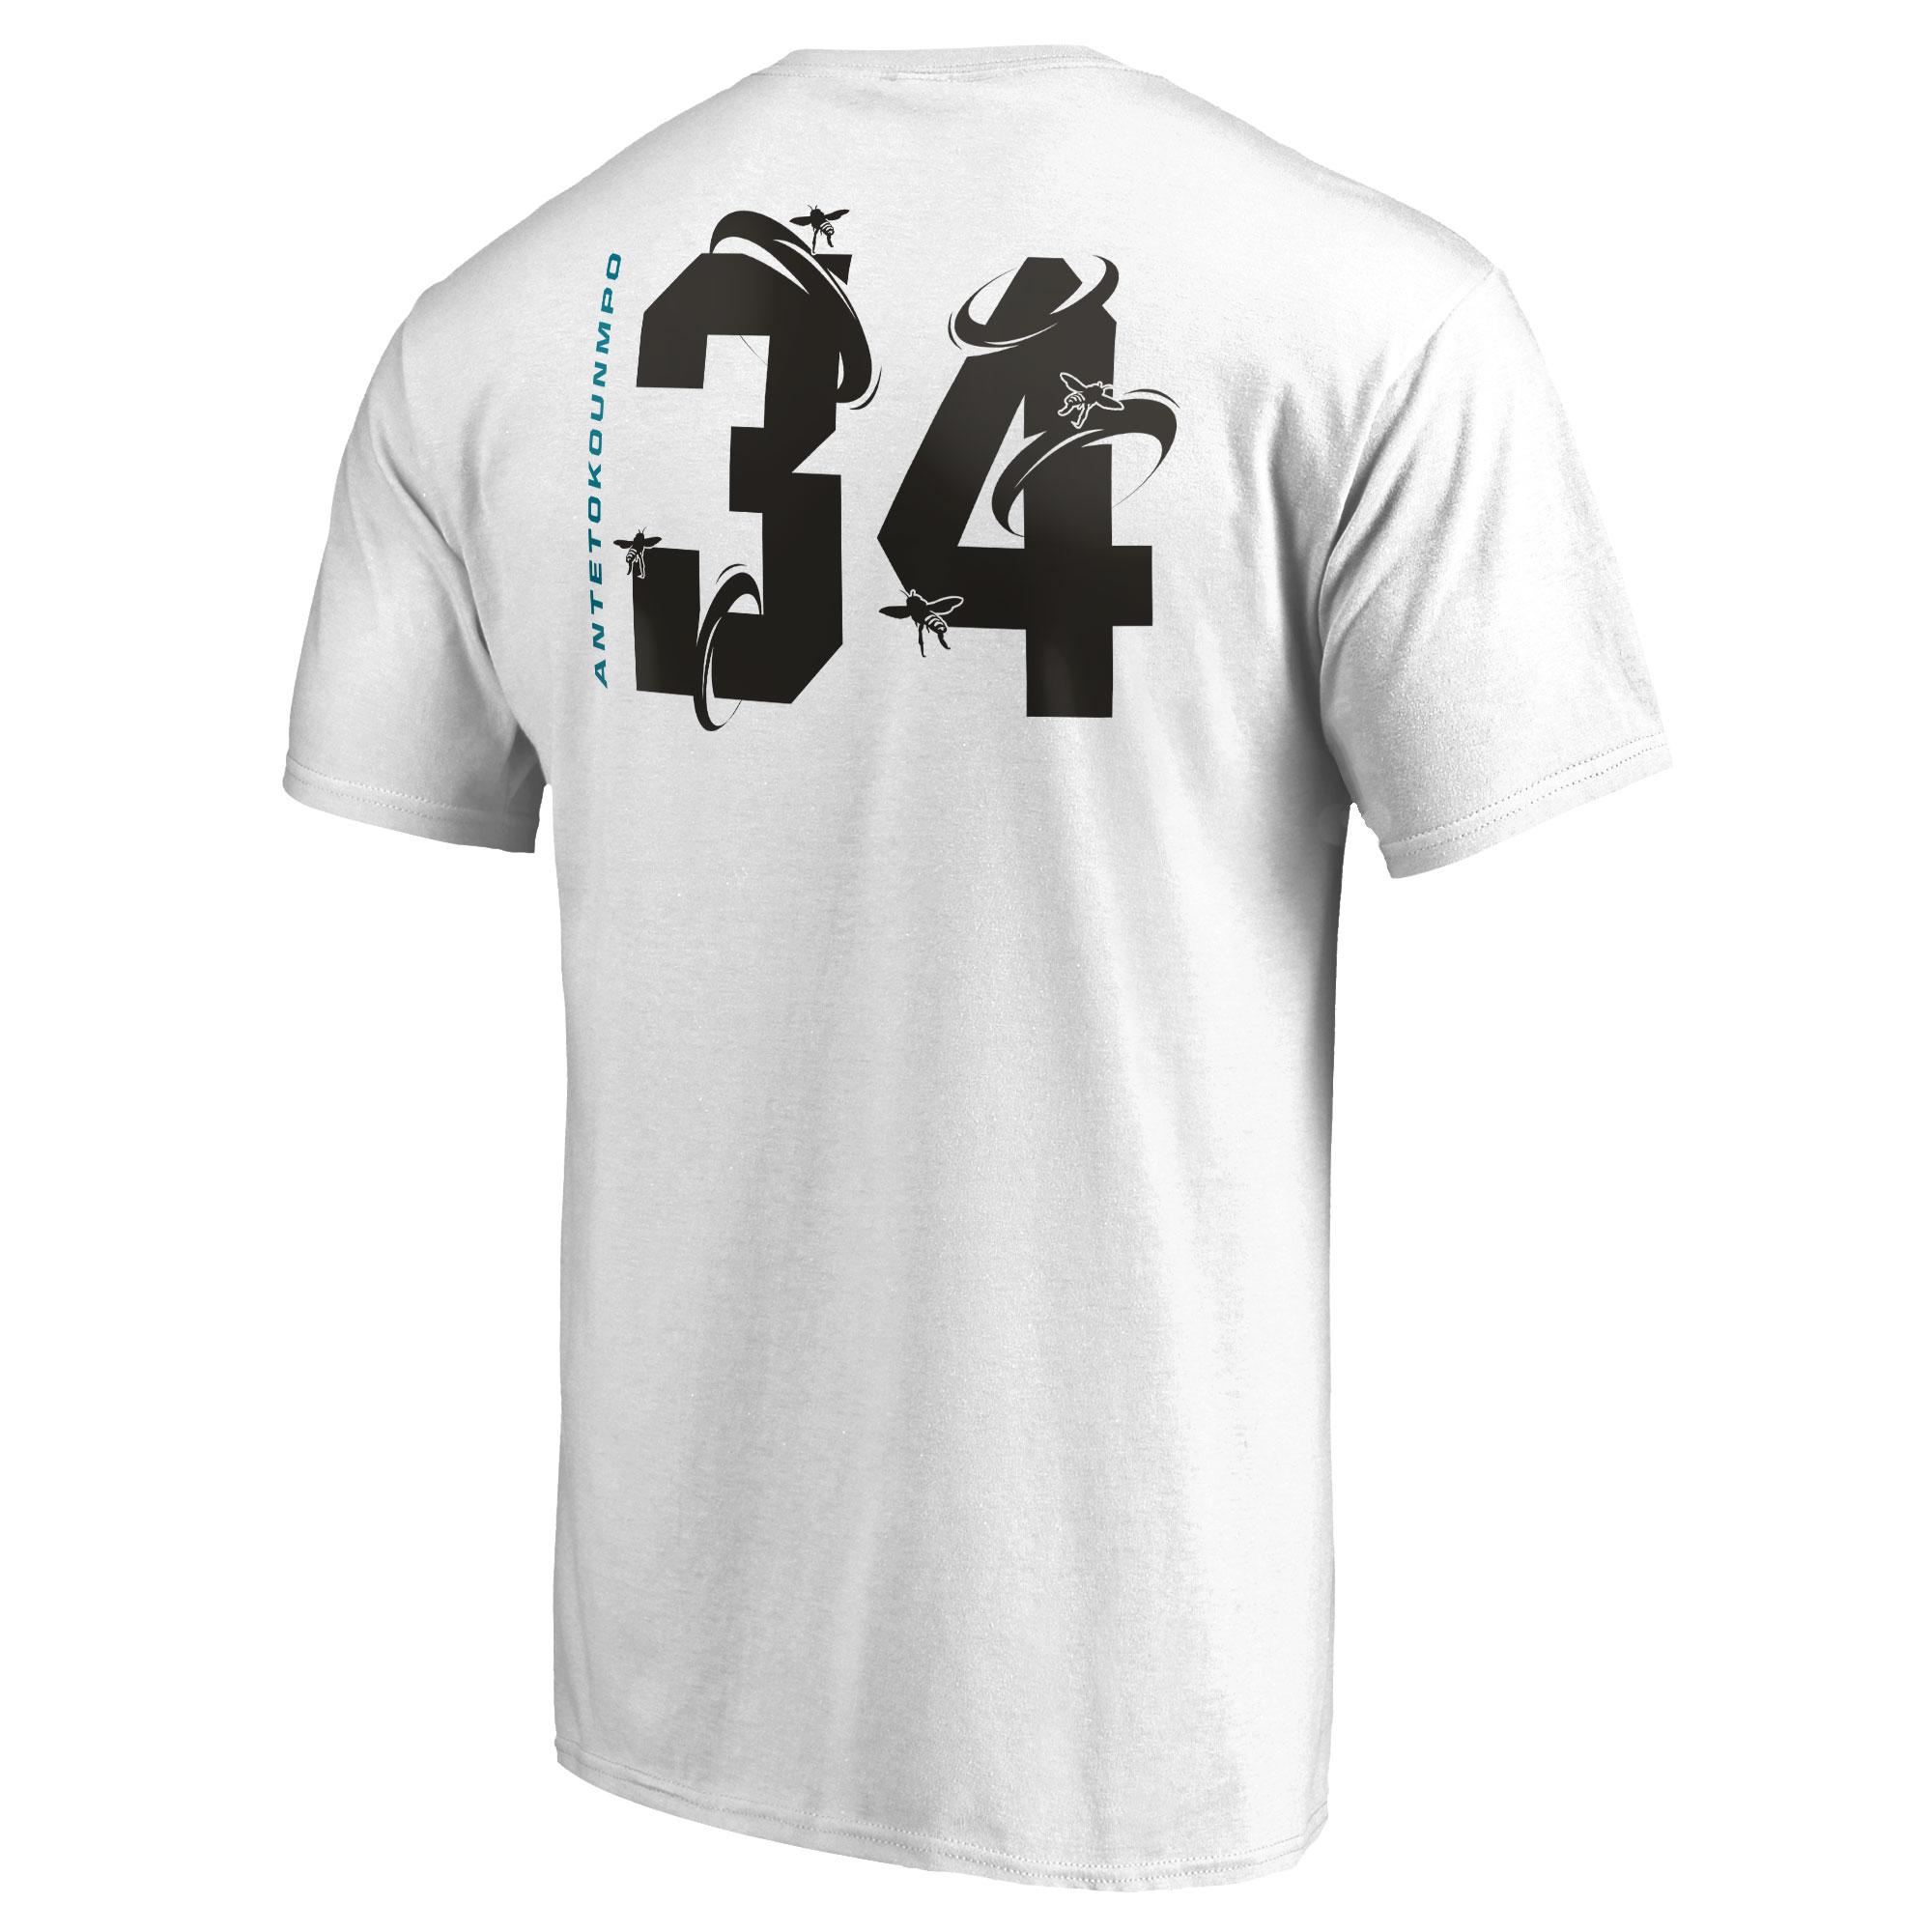 save off abdd0 efa14 Giannis Antetokounmpo Milwaukee Bucks Fanatics Branded 2019 NBA All-Star  Game The Buzz Side Sweep Name & Number T-Shirt - White